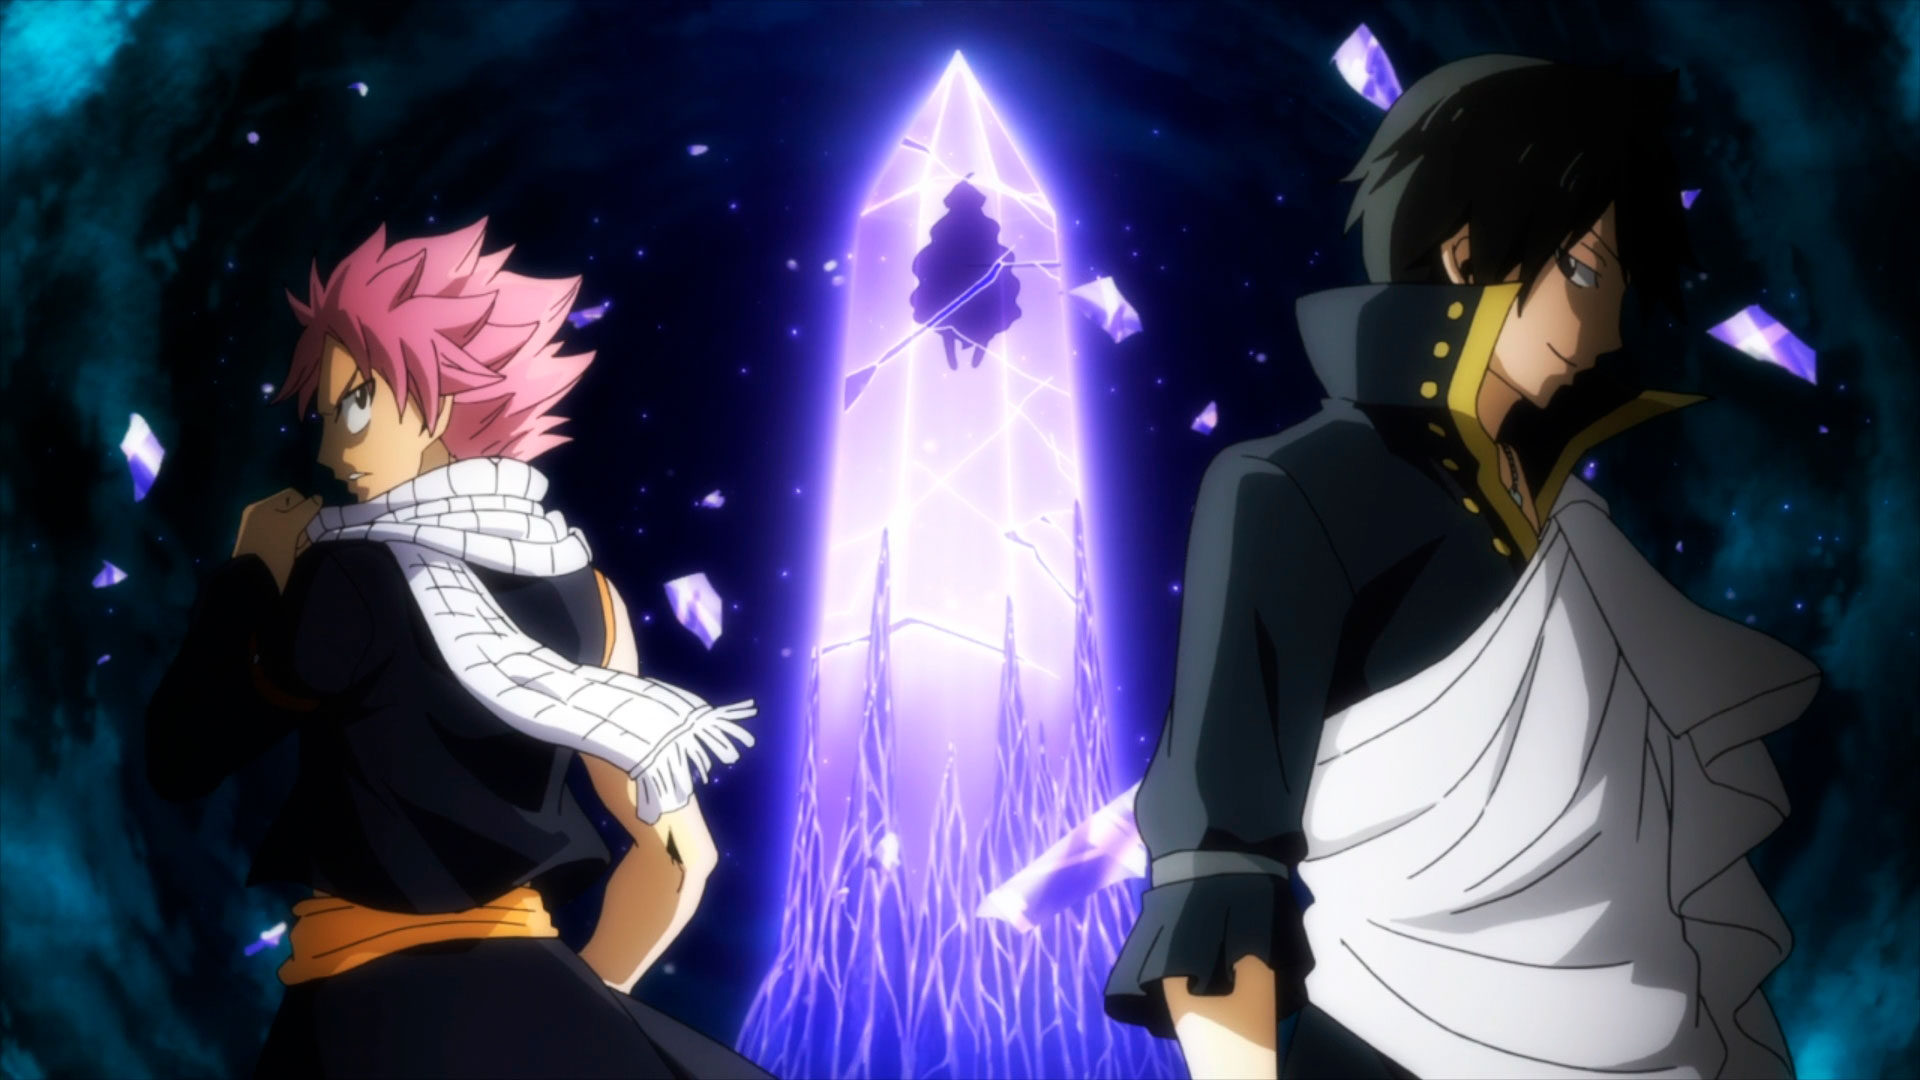 Descargar Fairy Tail S3 2018 Capitulo 14 1080p